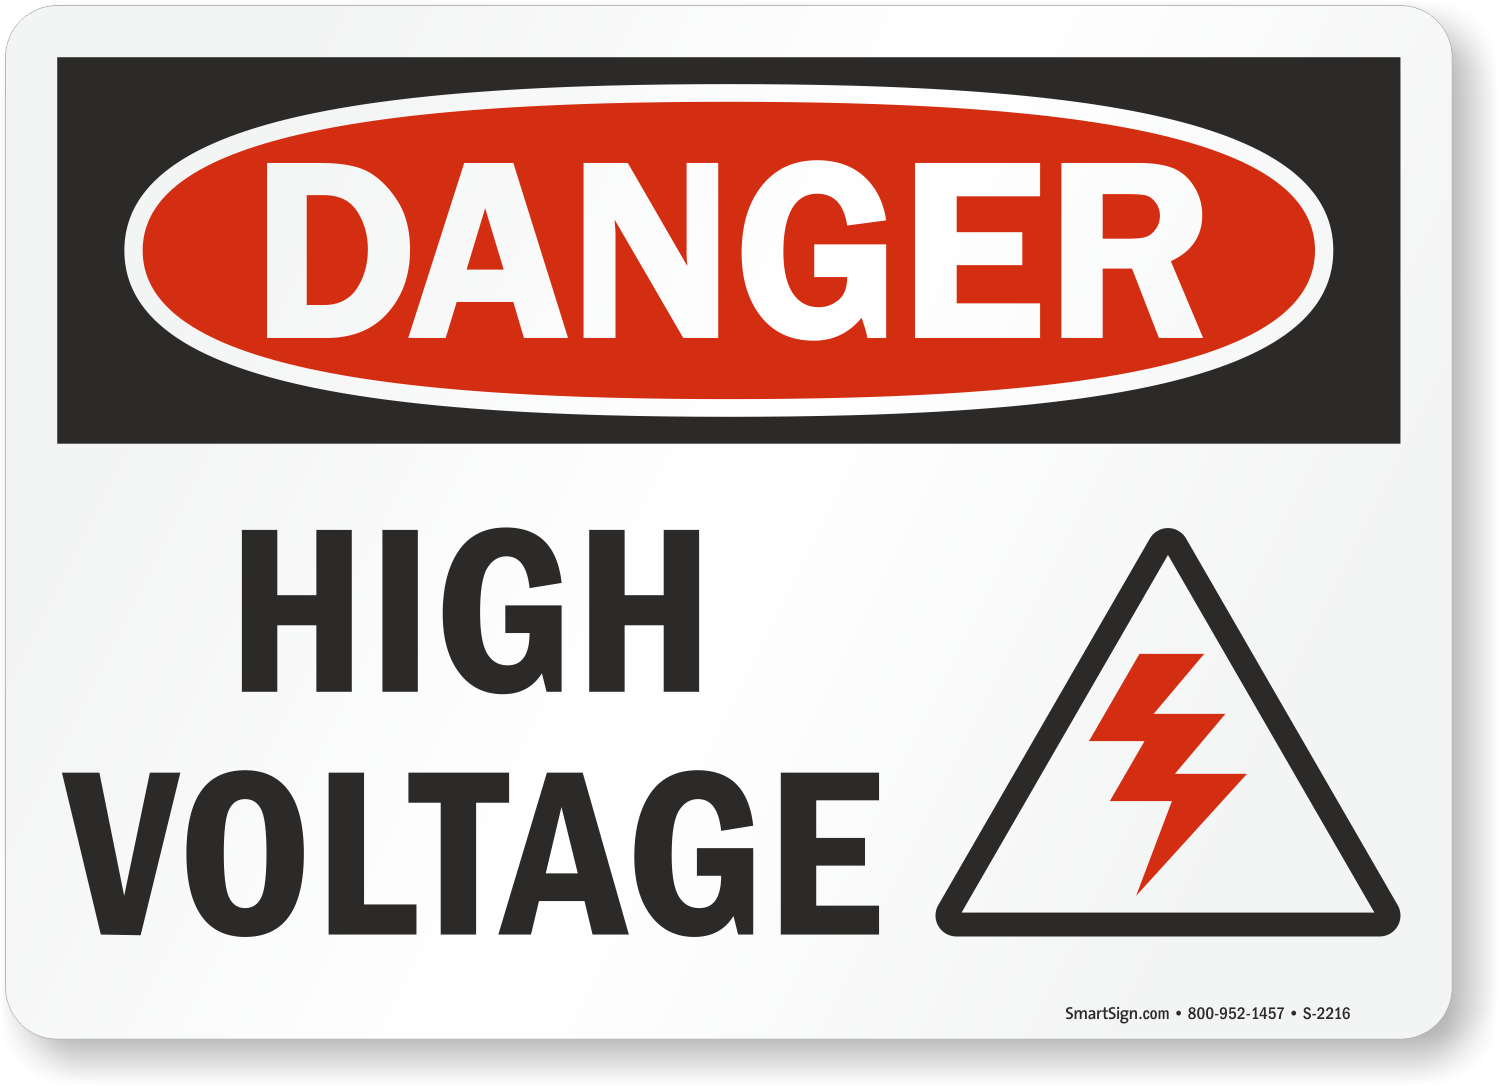 High Voltage Signs |Free Shipping on Orders Over $9.95!